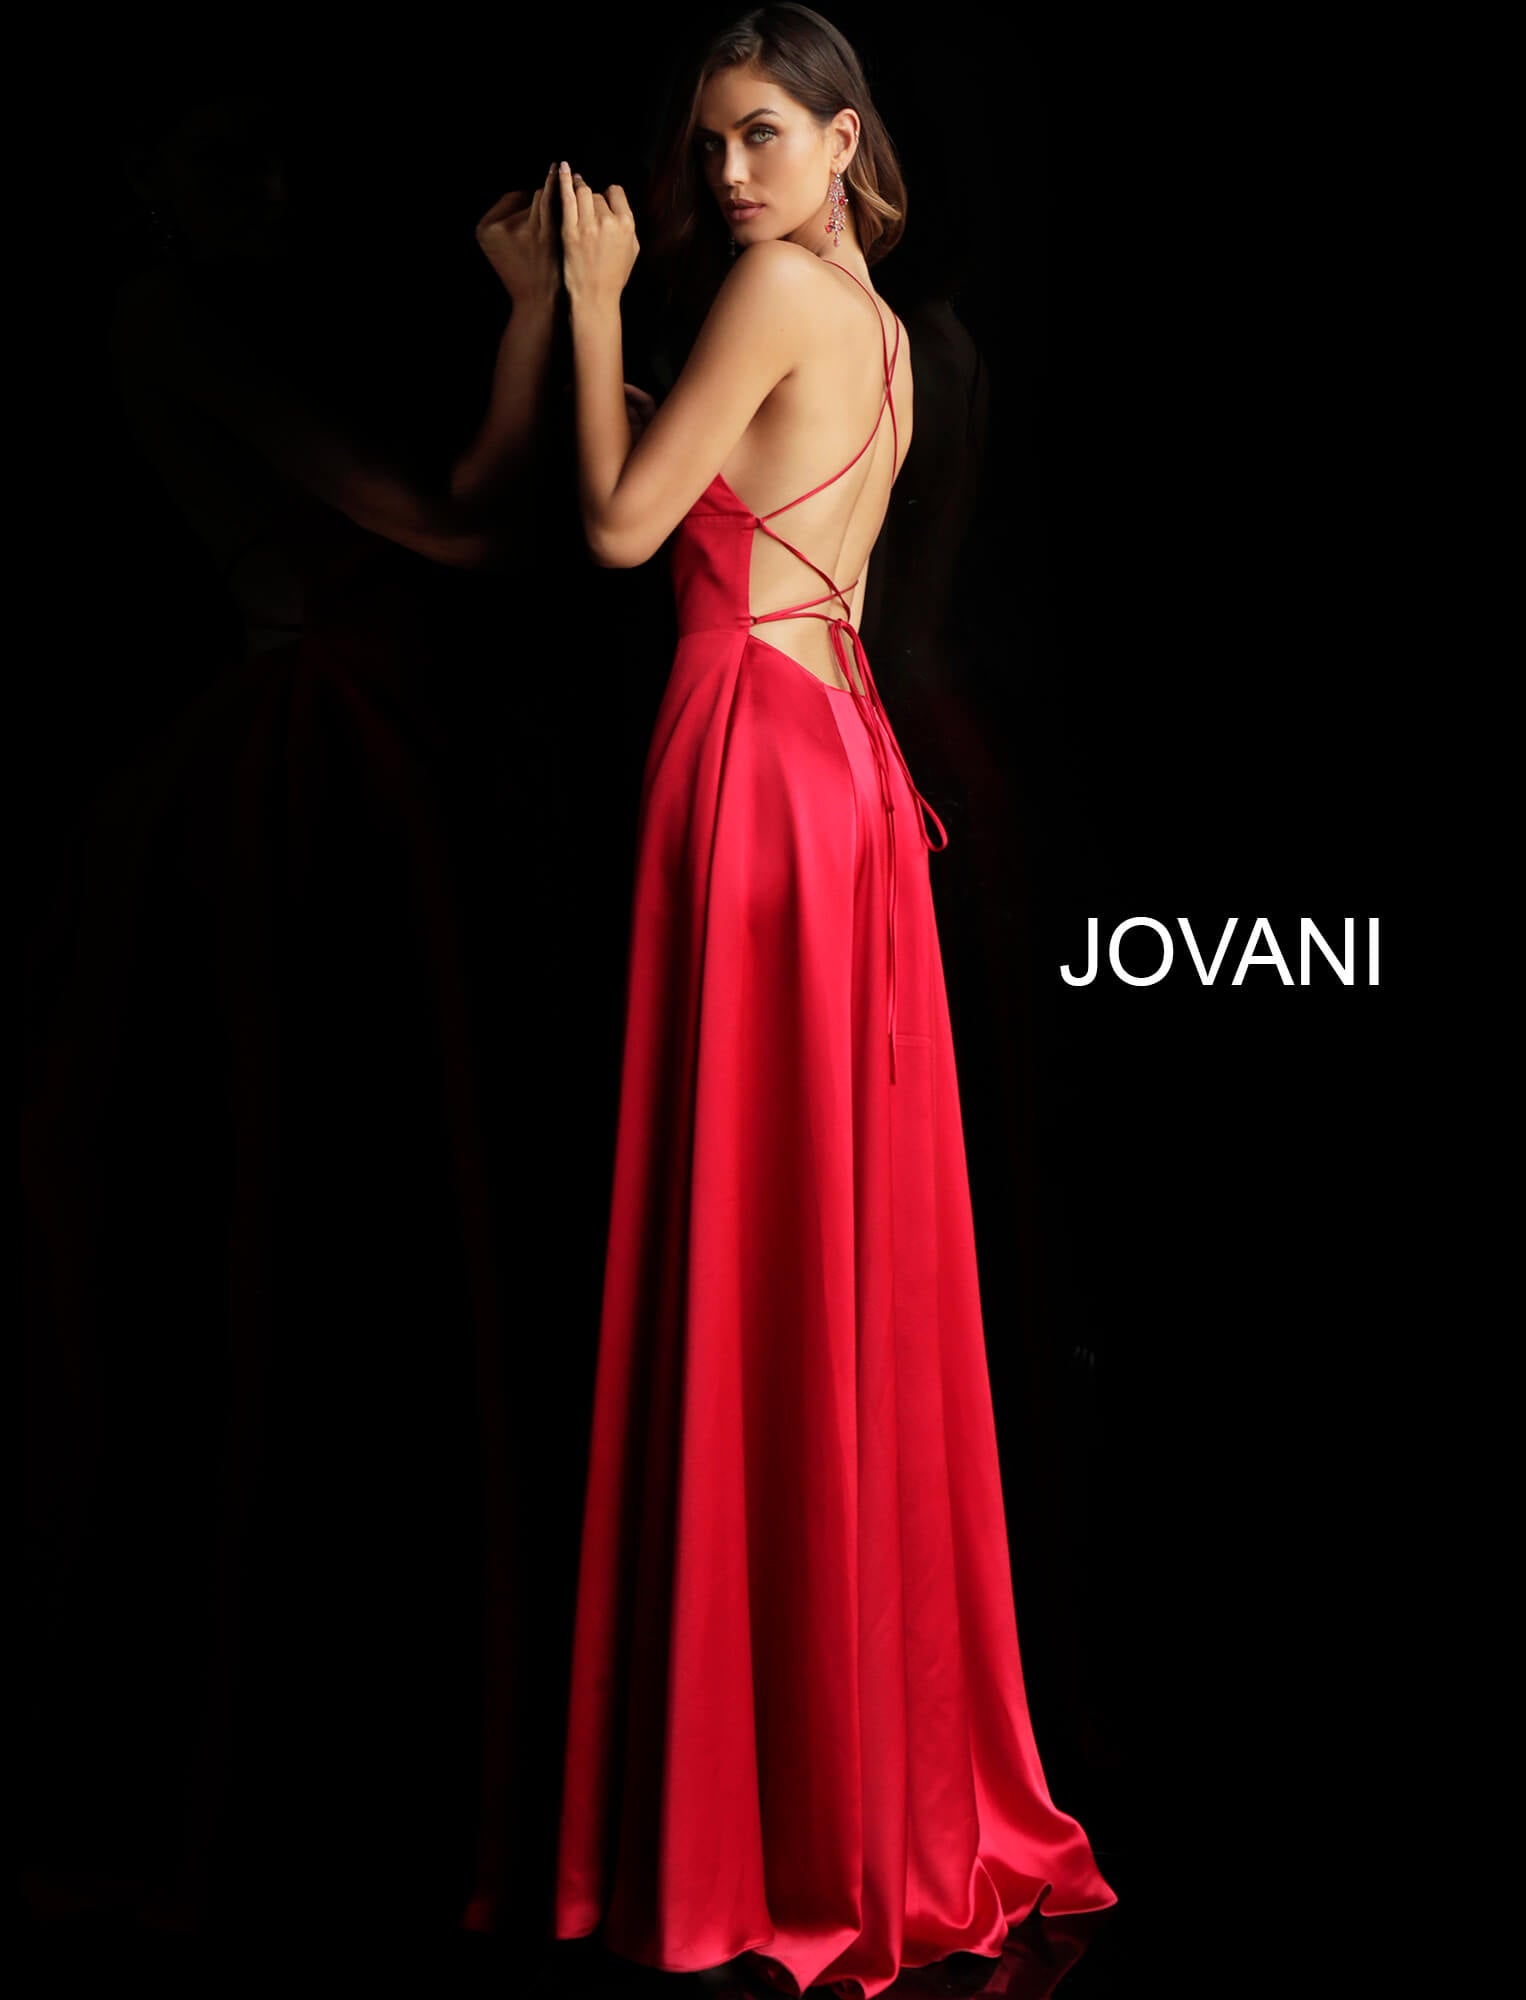 Jovani Red Satin Spaghetti Strap Gown - Gissings Boutique